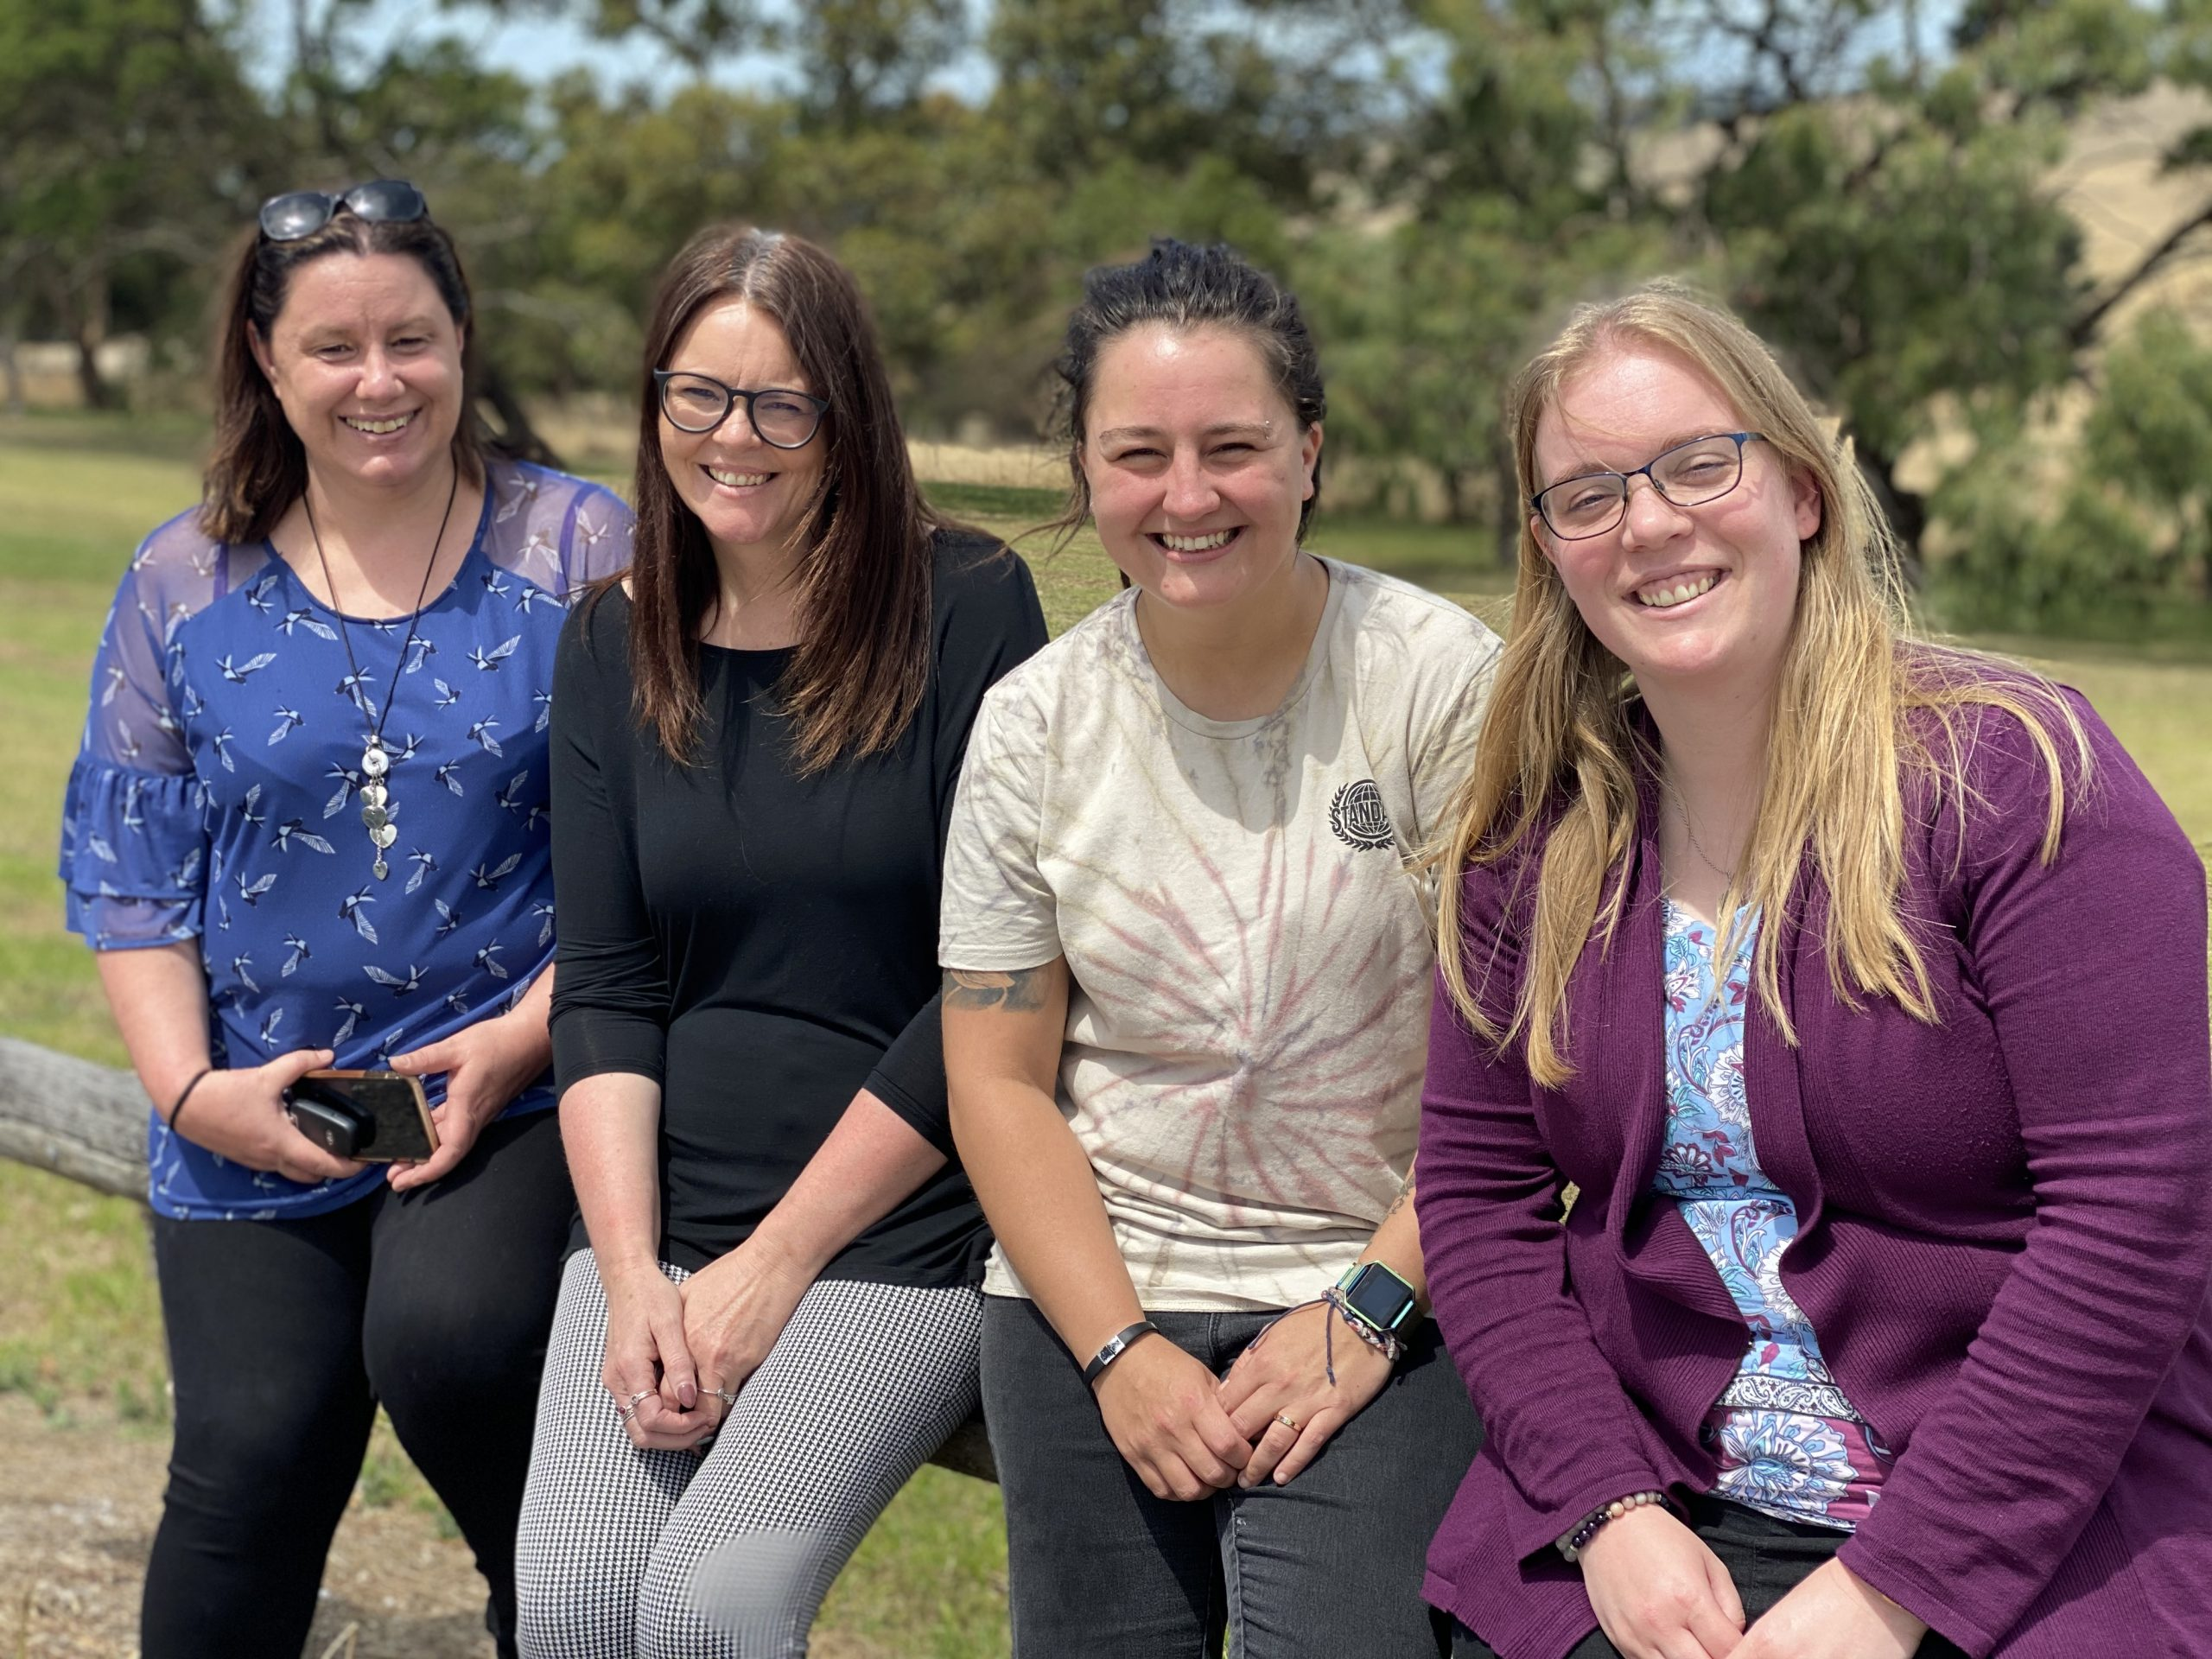 JOIN US TO CARE FOR YOUNG PEOPLE: Mount Gambier residential care home house supervisors Sherri Winter, Lynne Lambert, Maddy Fry and Caroll Saunders are leading a recruitment campaign to attract more residential care workers to support young people.